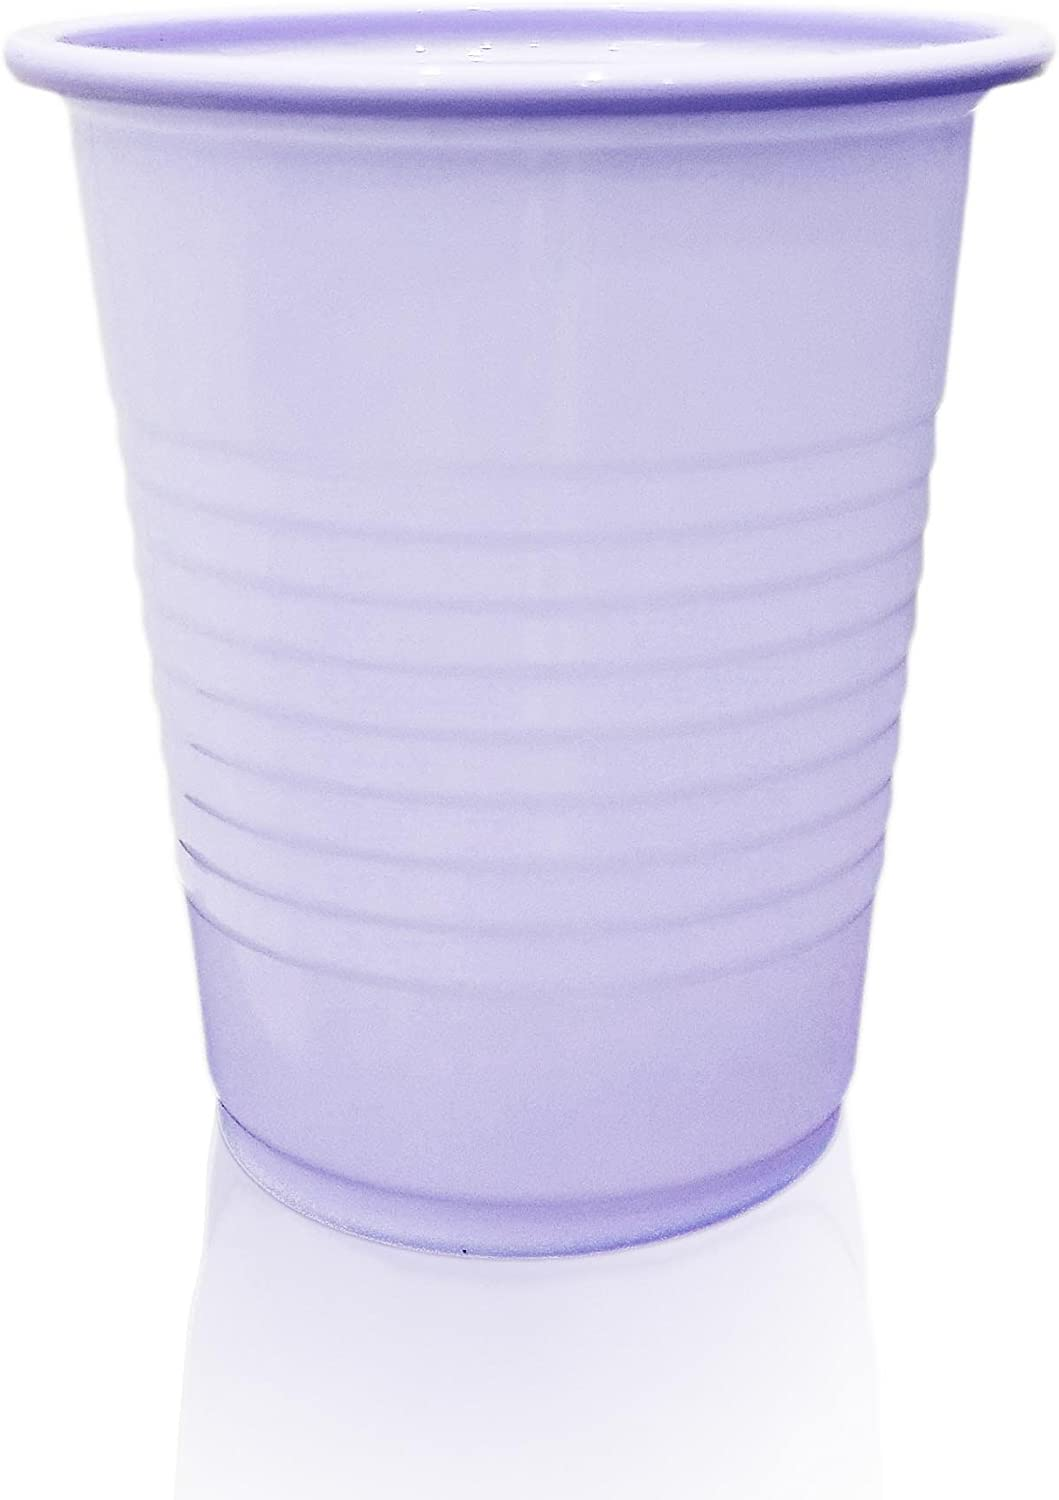 Safe-Dent Disposable 5 oz Plastic 1000 Cups Count Dental Ranking TOP4 Medical famous